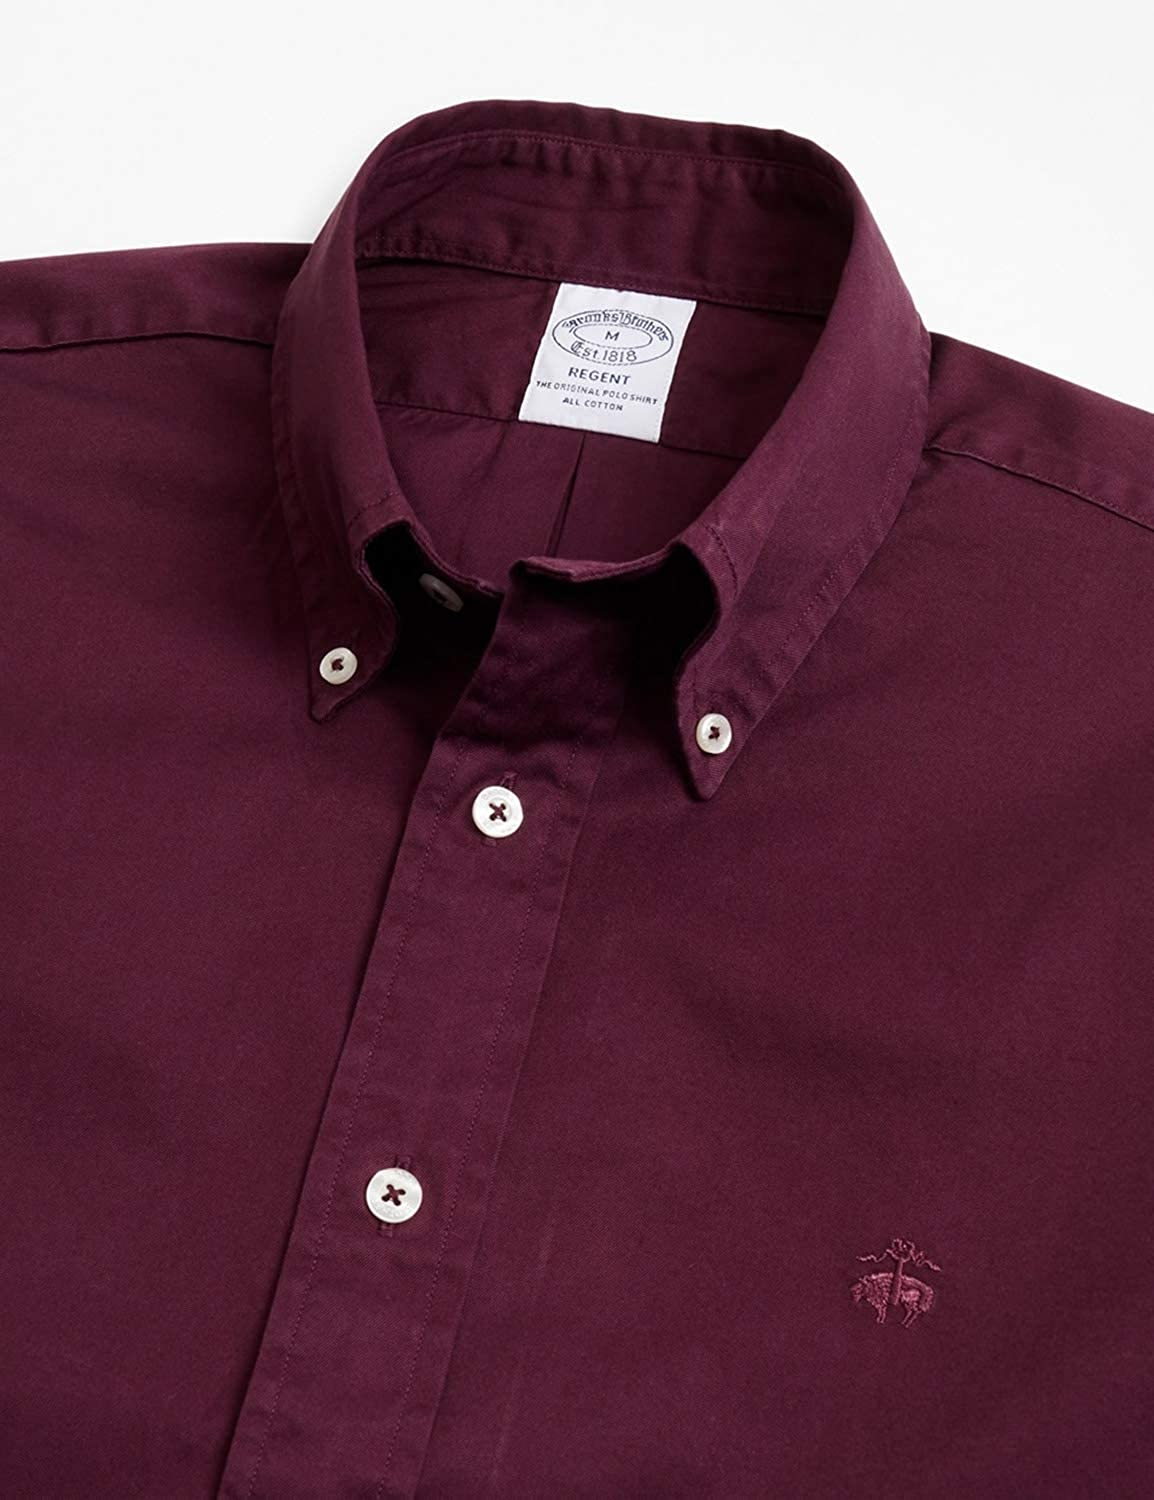 Brooks Brothers Men's Camicia Sportiva Shirt Open Red